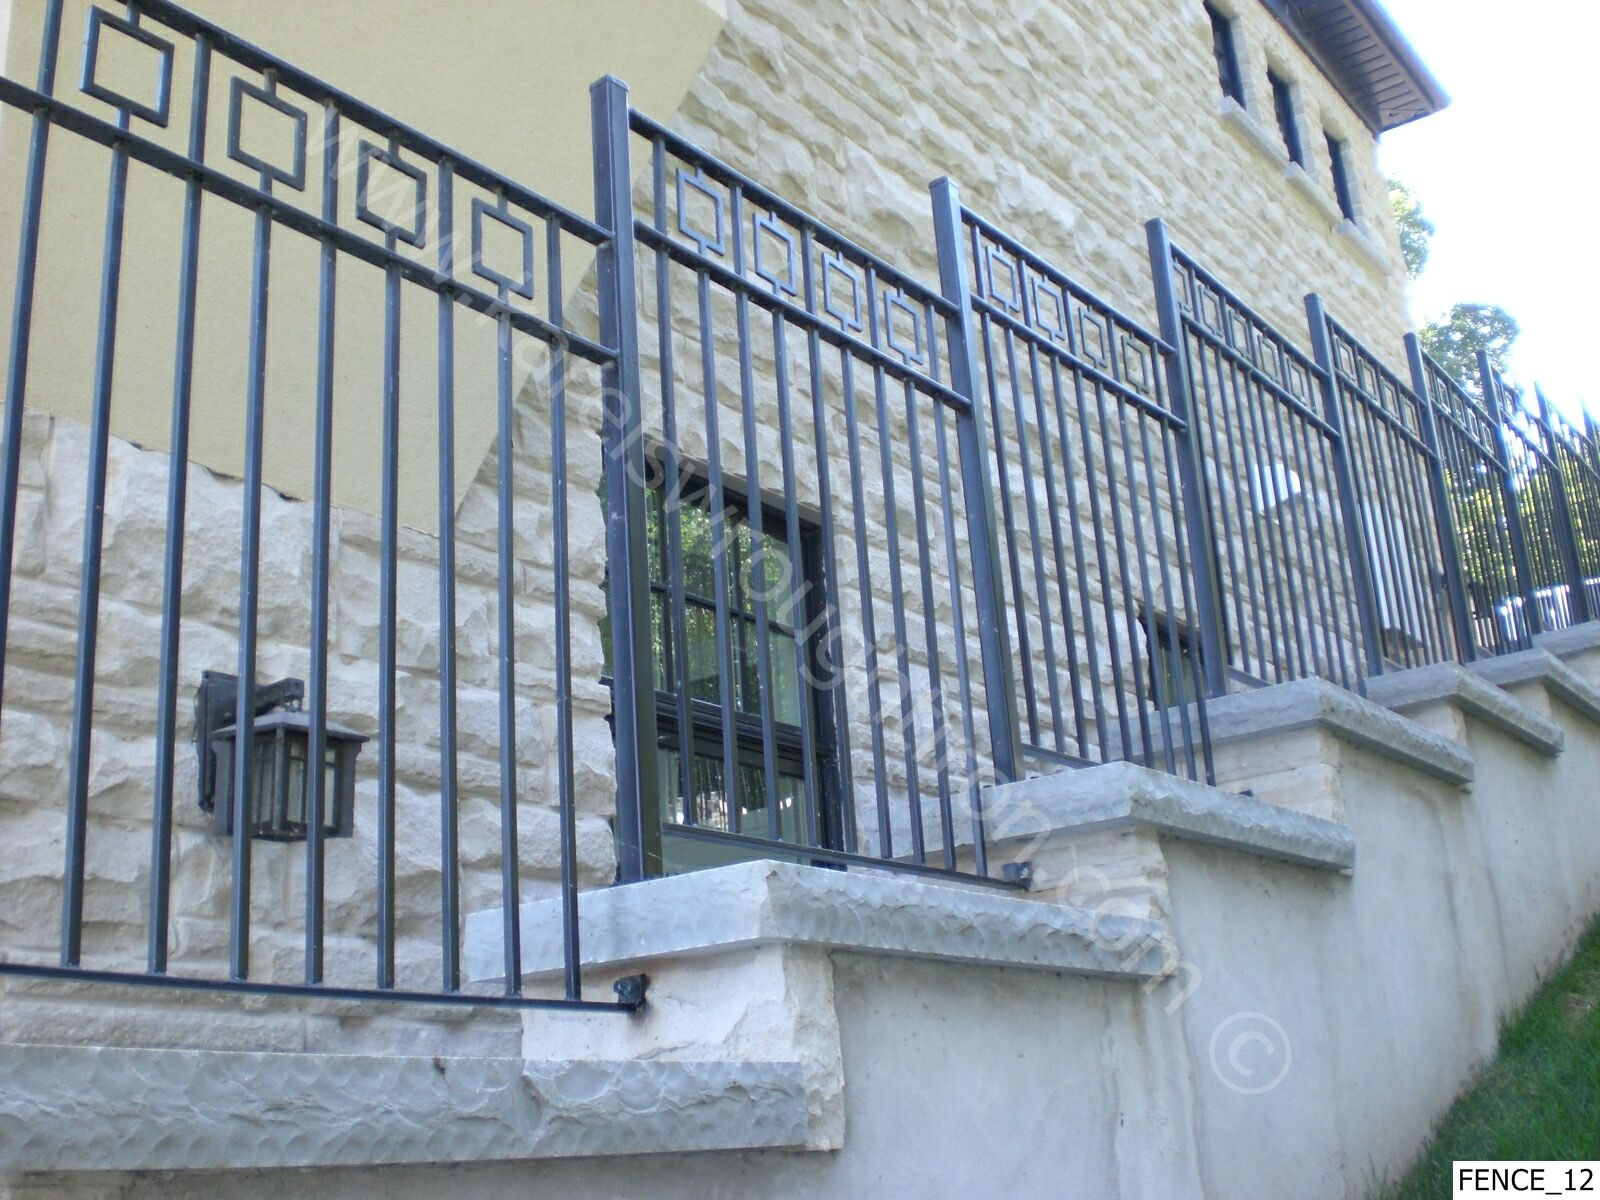 Wrought Iron Fencing Fence 12 Jpg